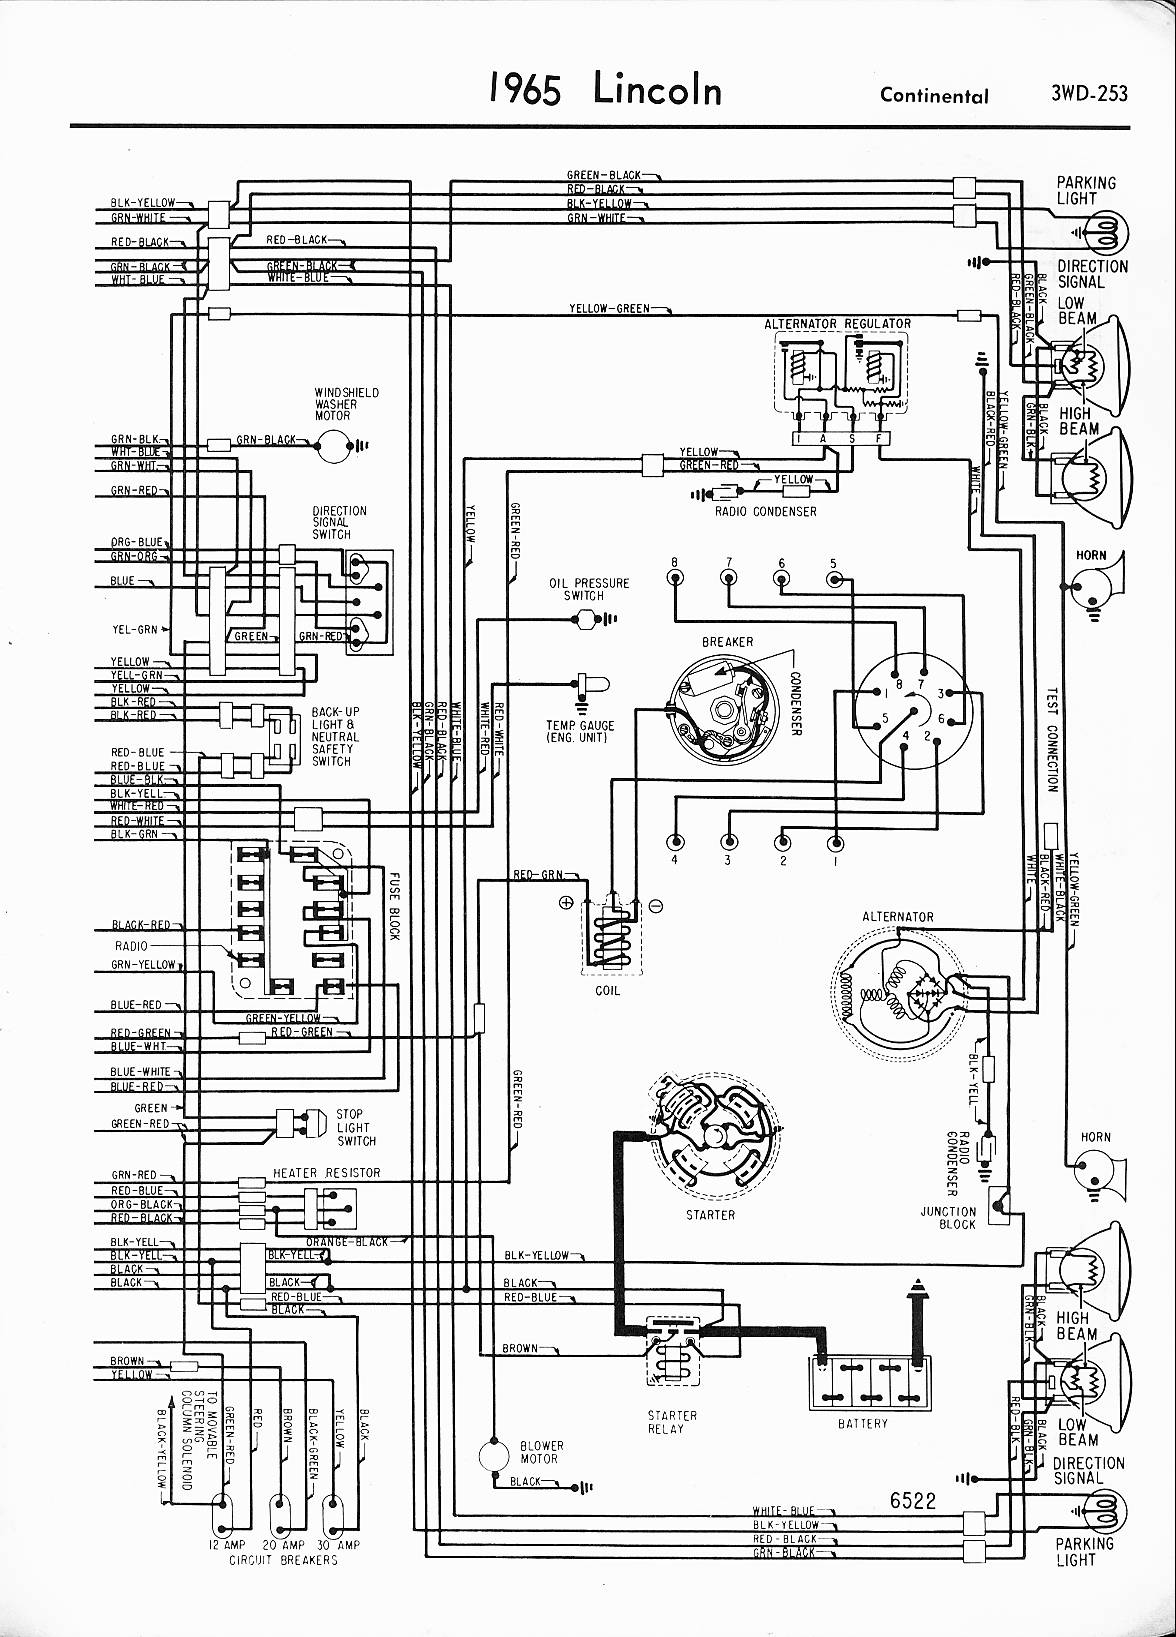 Lincoln Ac Wiring Diagram Guide And Troubleshooting Of Zephyr Diagrams 1957 1965 Rh Oldcarmanualproject Com 1997 Town Car 97